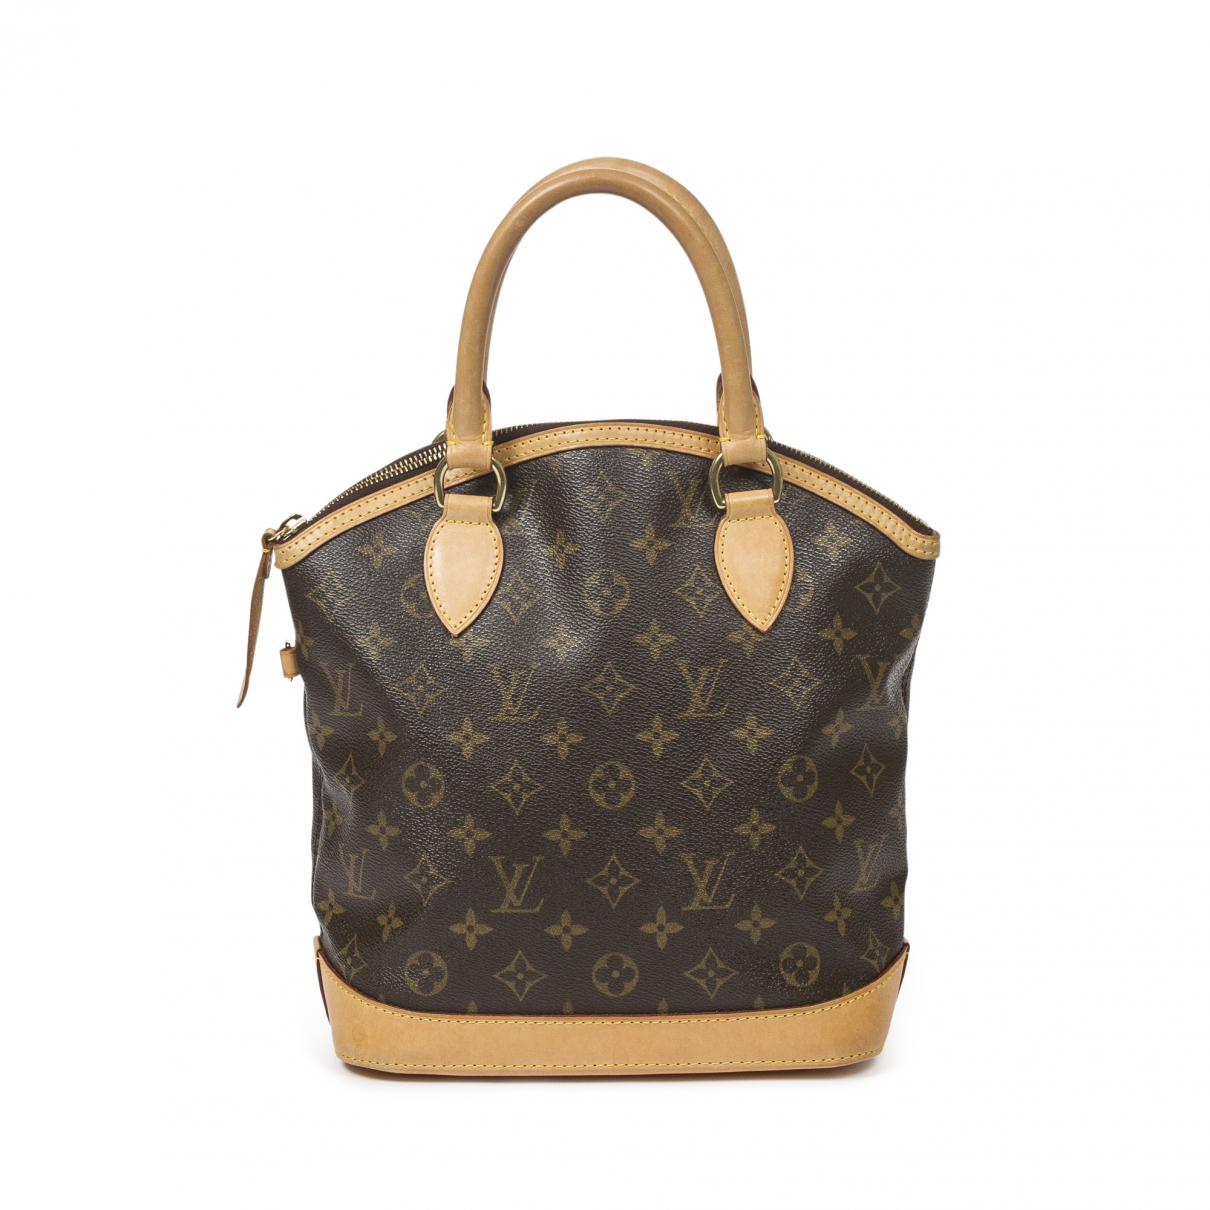 Louis Vuitton Lockit Vertical Handtasche in  Braun Baumwolle